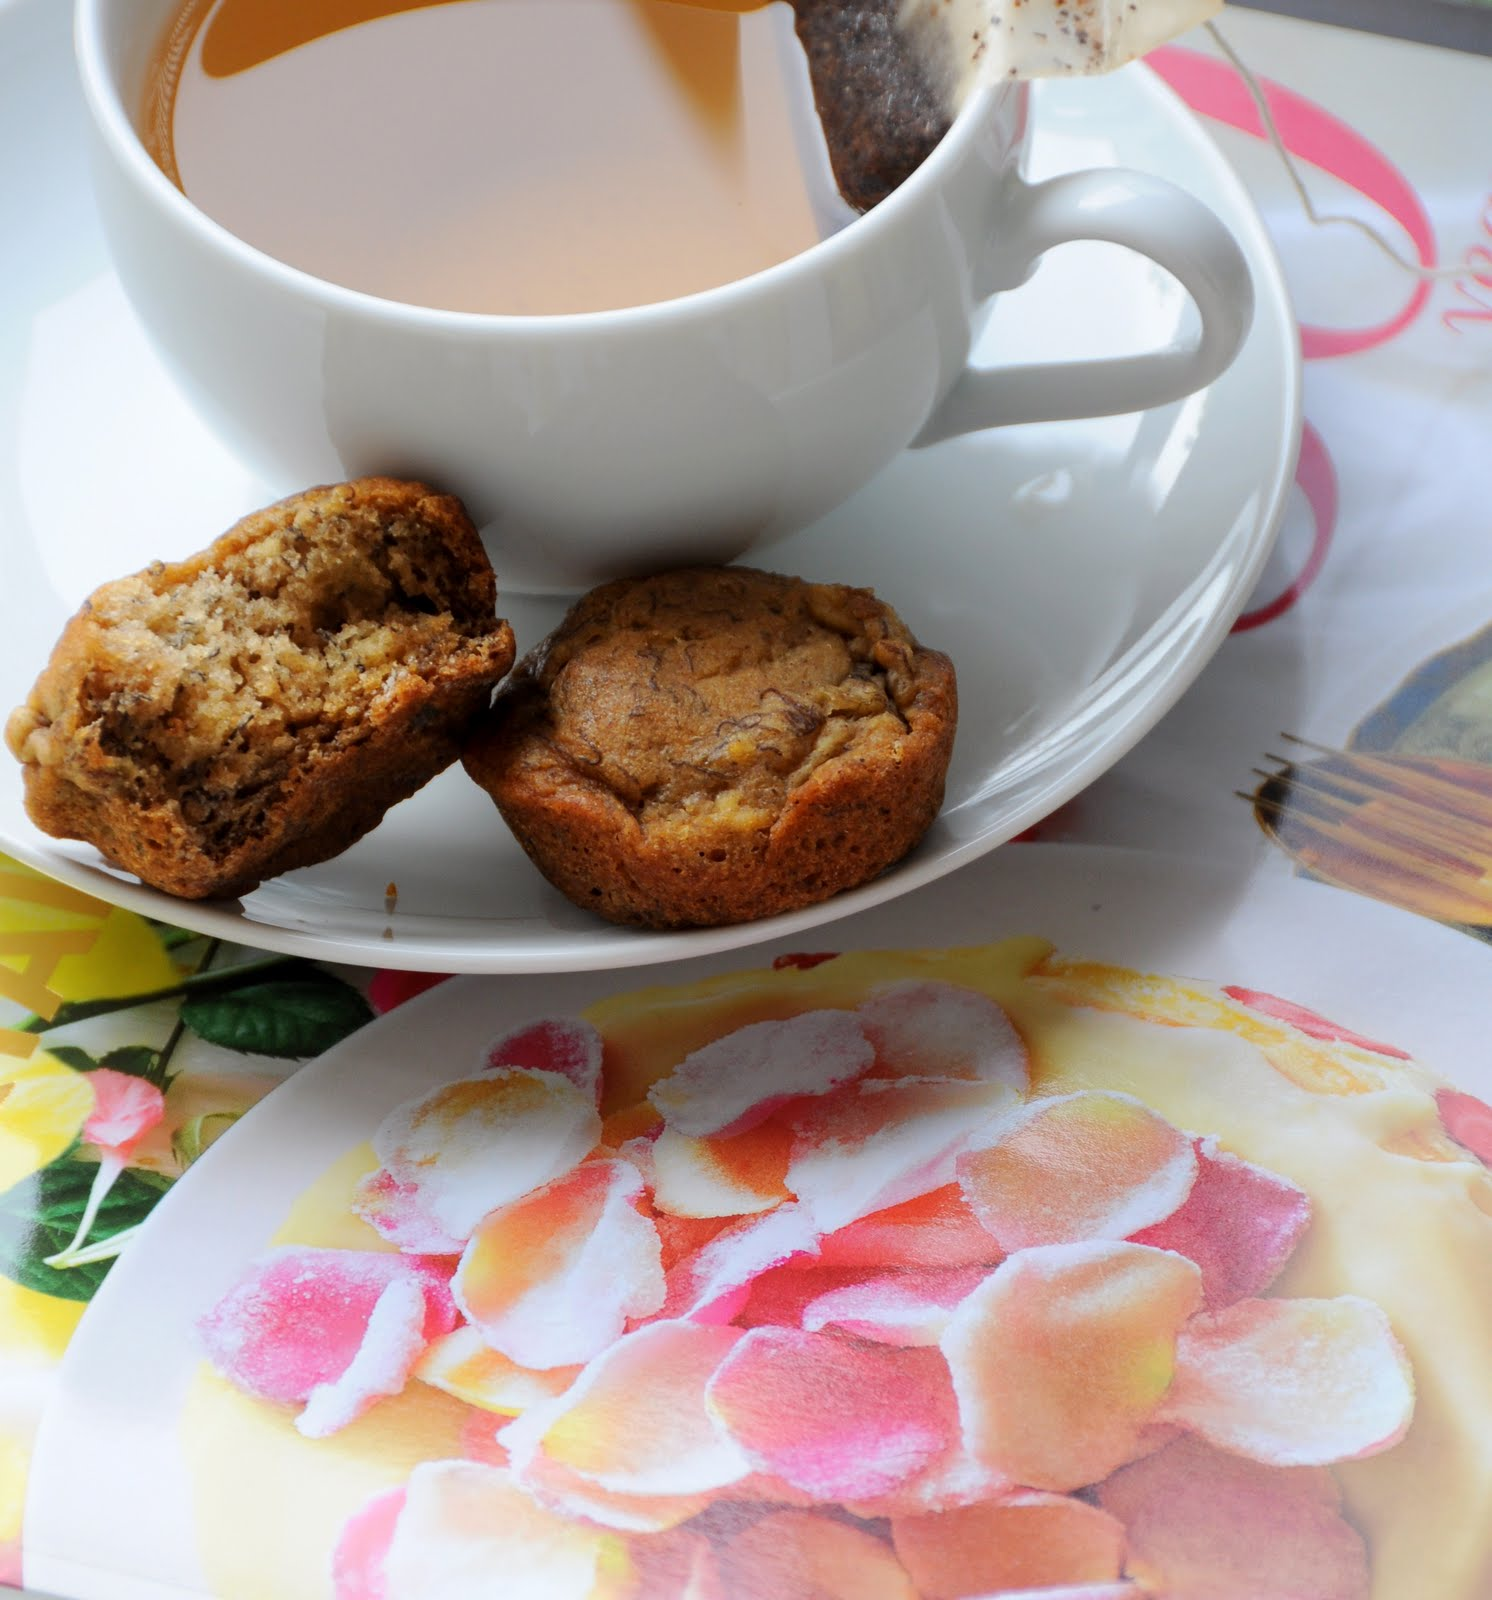 ... saturday morning {gluten free, sugar free & vegan banana mini muffins